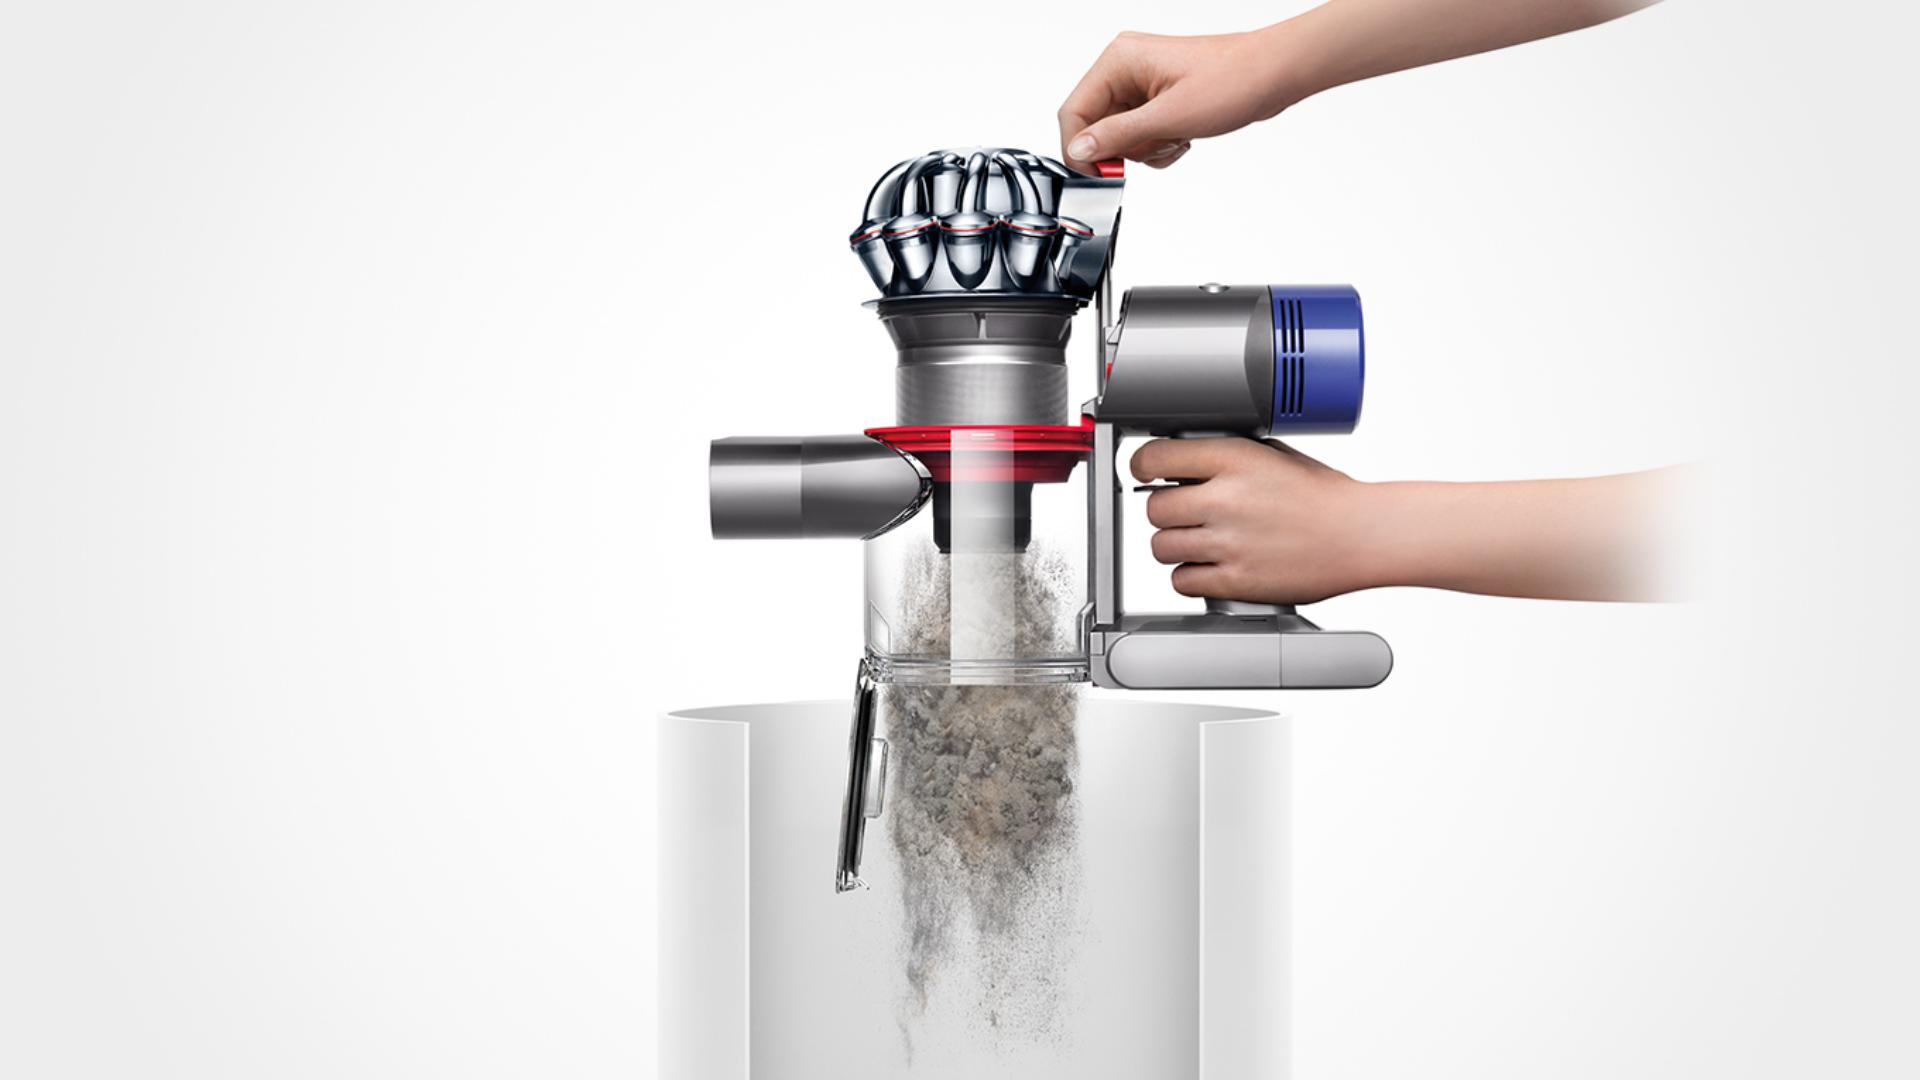 Dyson V8 being easily emptied into a bin